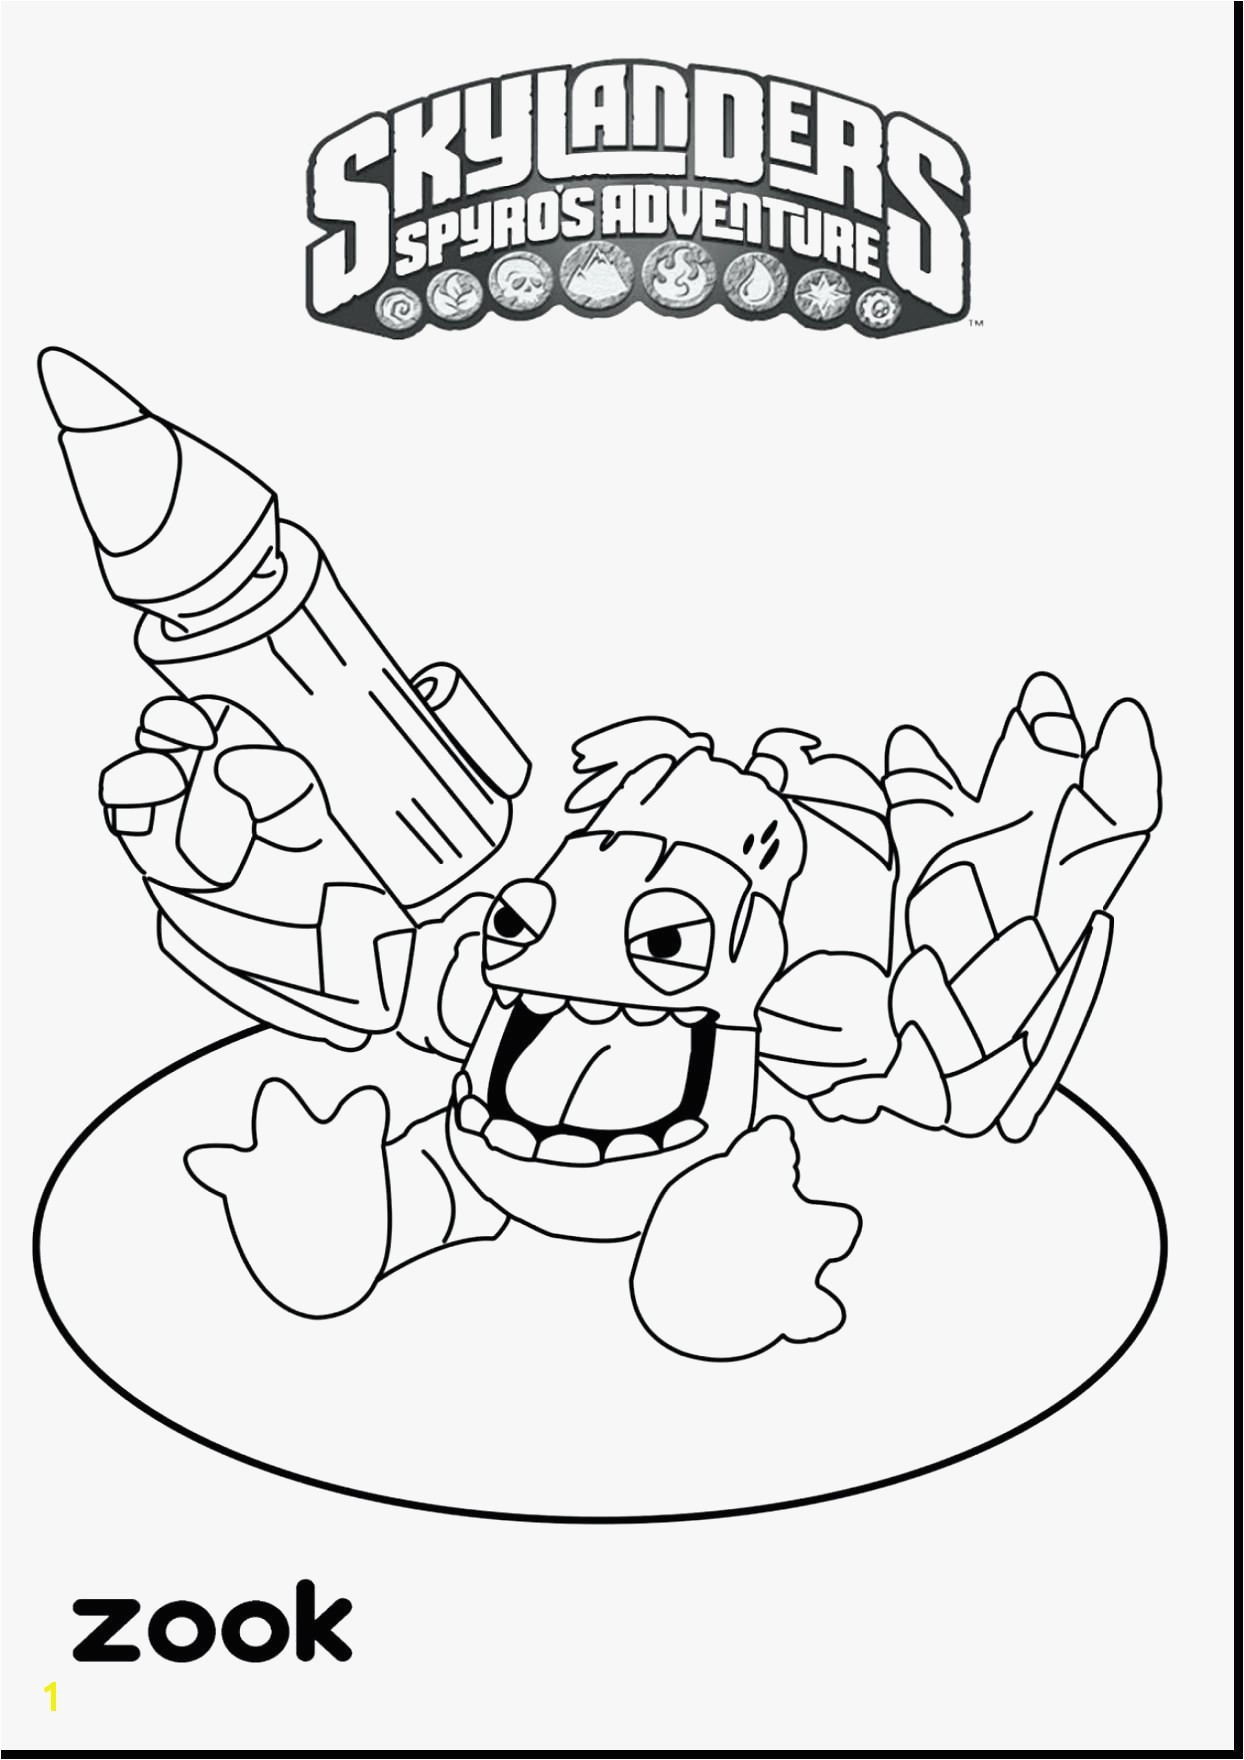 autumn coloring pages images new preschool coloring pages fresh fall coloring pages 0d page for kids